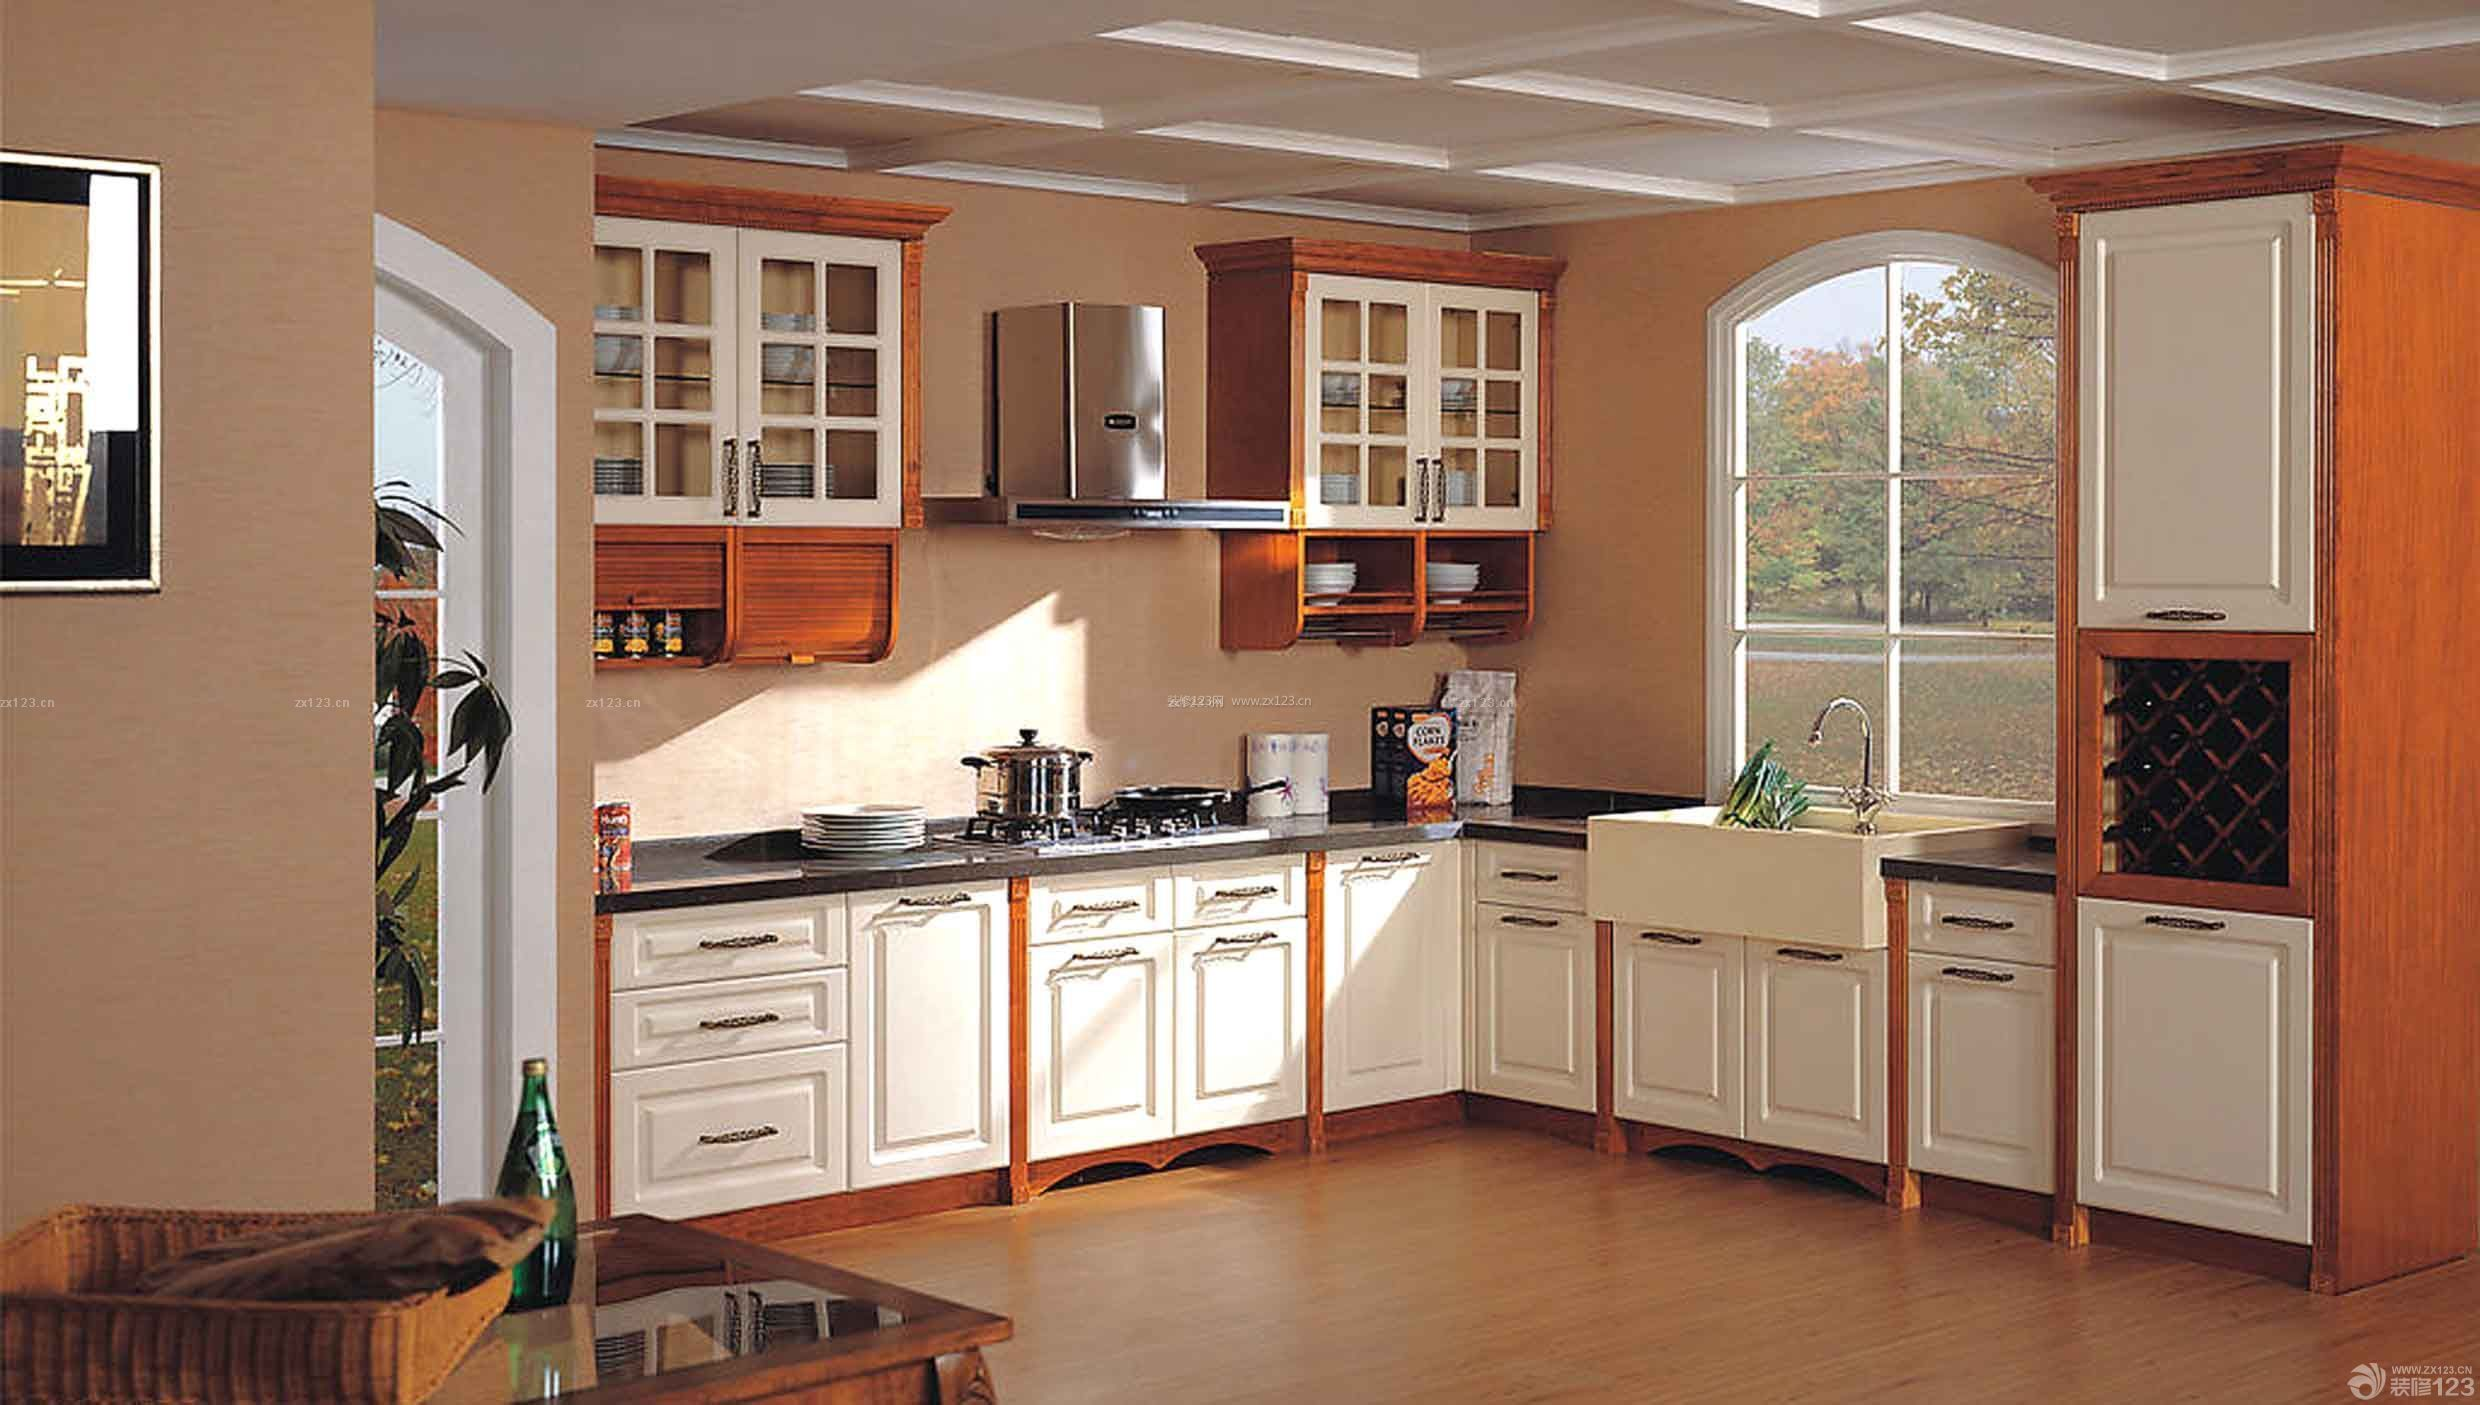 Cnc Router For Wood Kitchen Cabinet Doo Kitchen Cabinets Painting Kitchen Cabinets Cheap Kitchen Cabinets